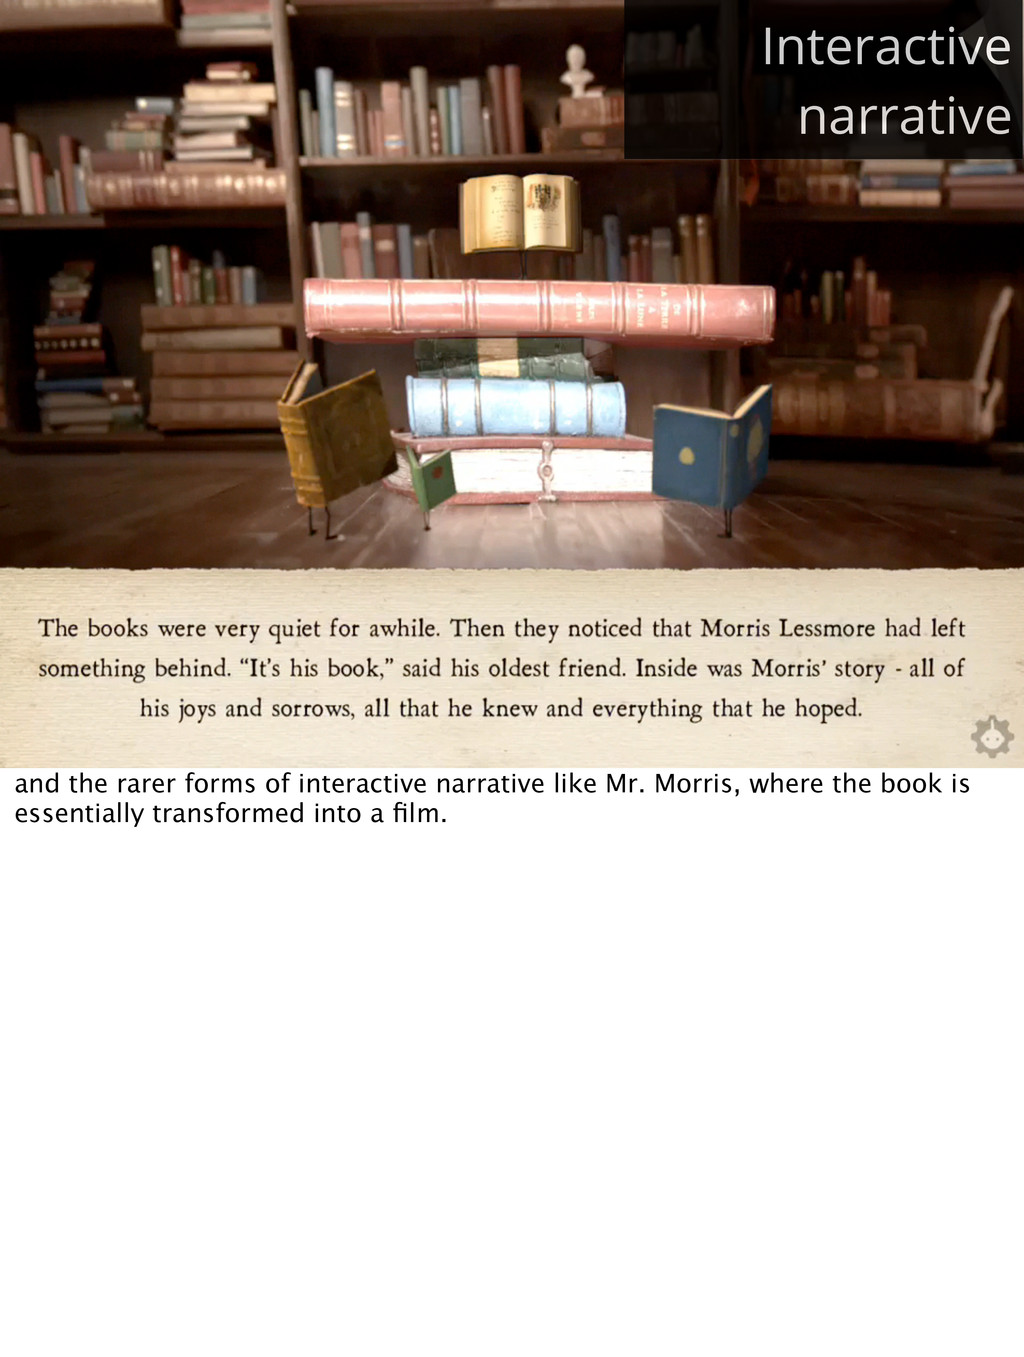 Interactive narrative and the rarer forms of in...